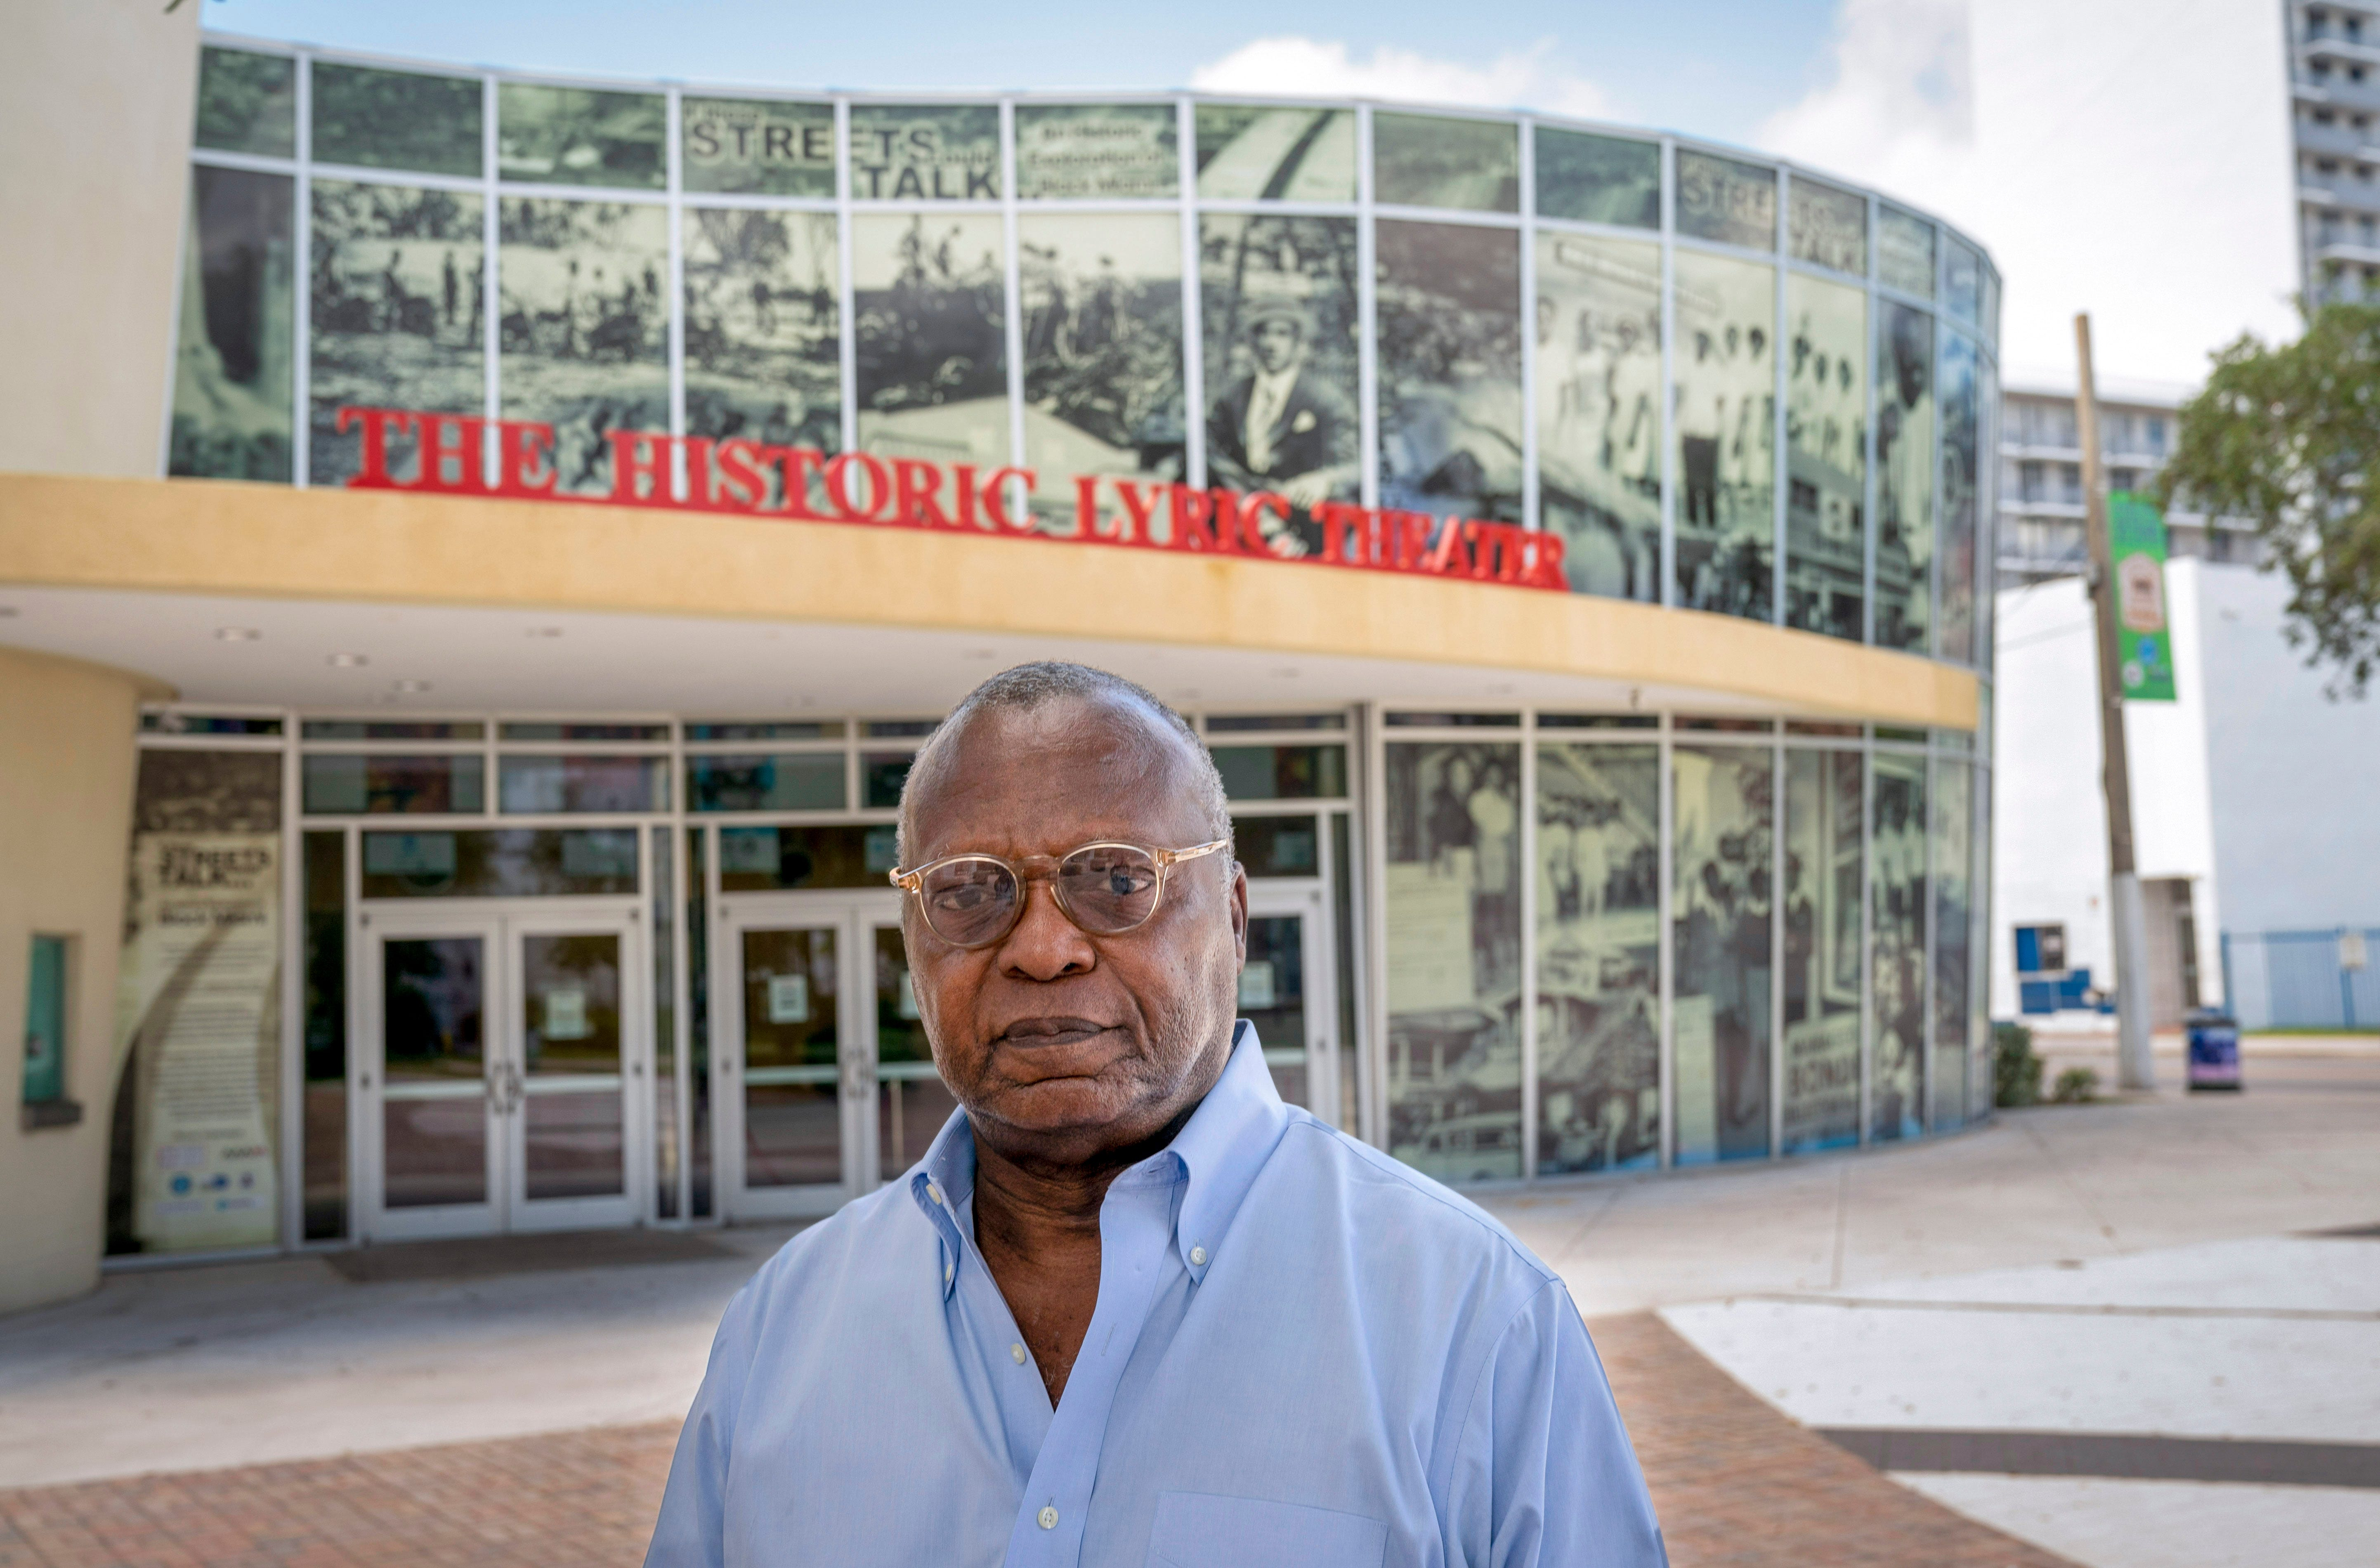 Milton Vickers in front of the Black Archives - Historic Lyric Theater was restored to what it was in the 1940s and 1950s in the Overtown neighborhood in Miami, Florida on August 6, 2021.